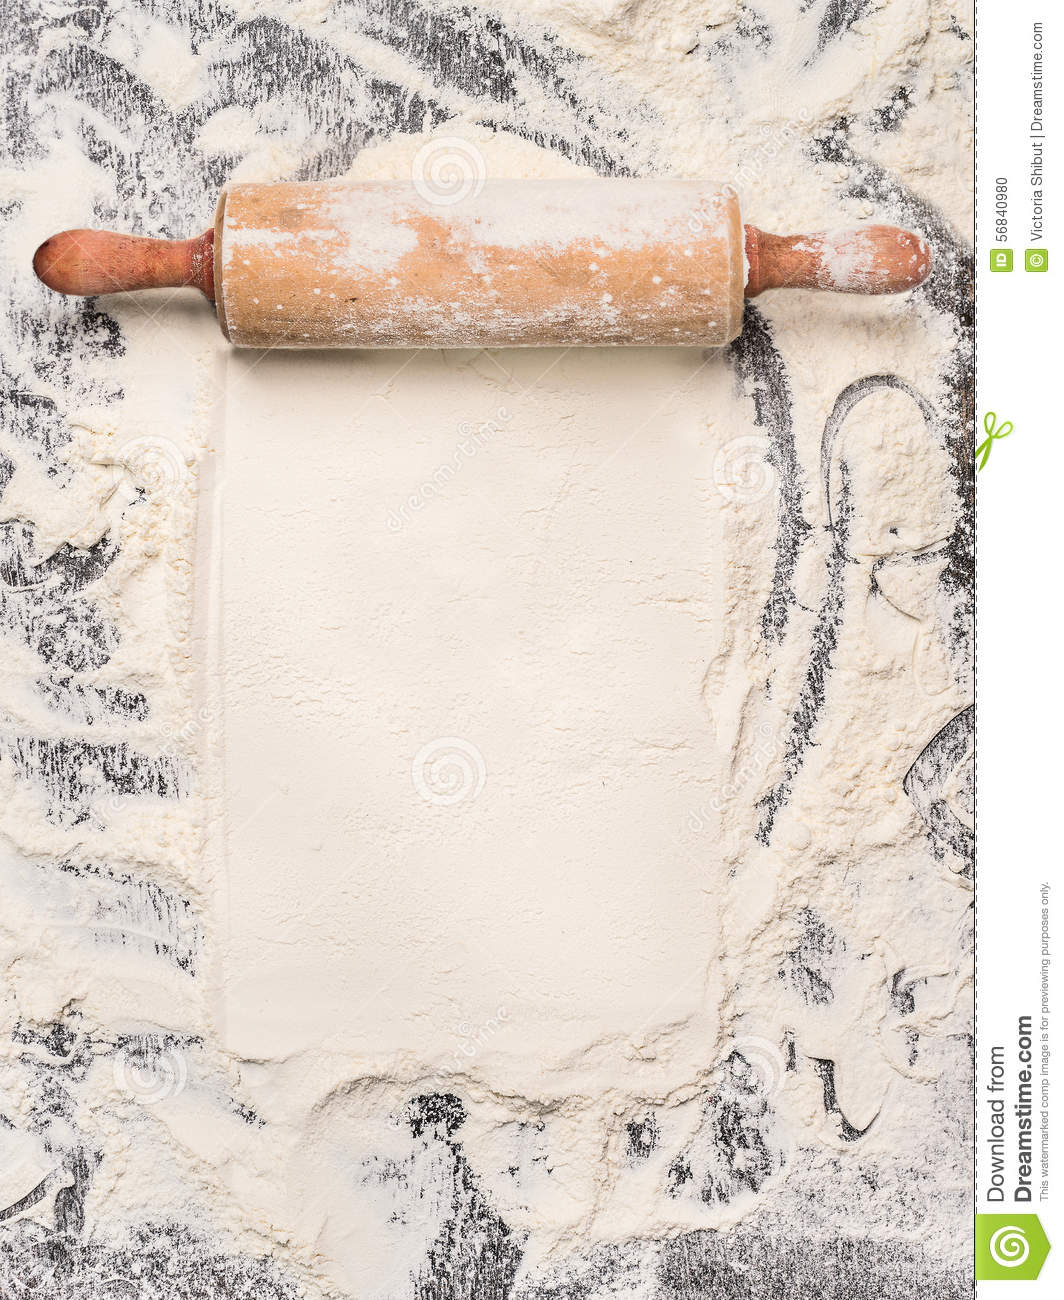 Baking Background With Flour And Rustic Rolling Pin Top